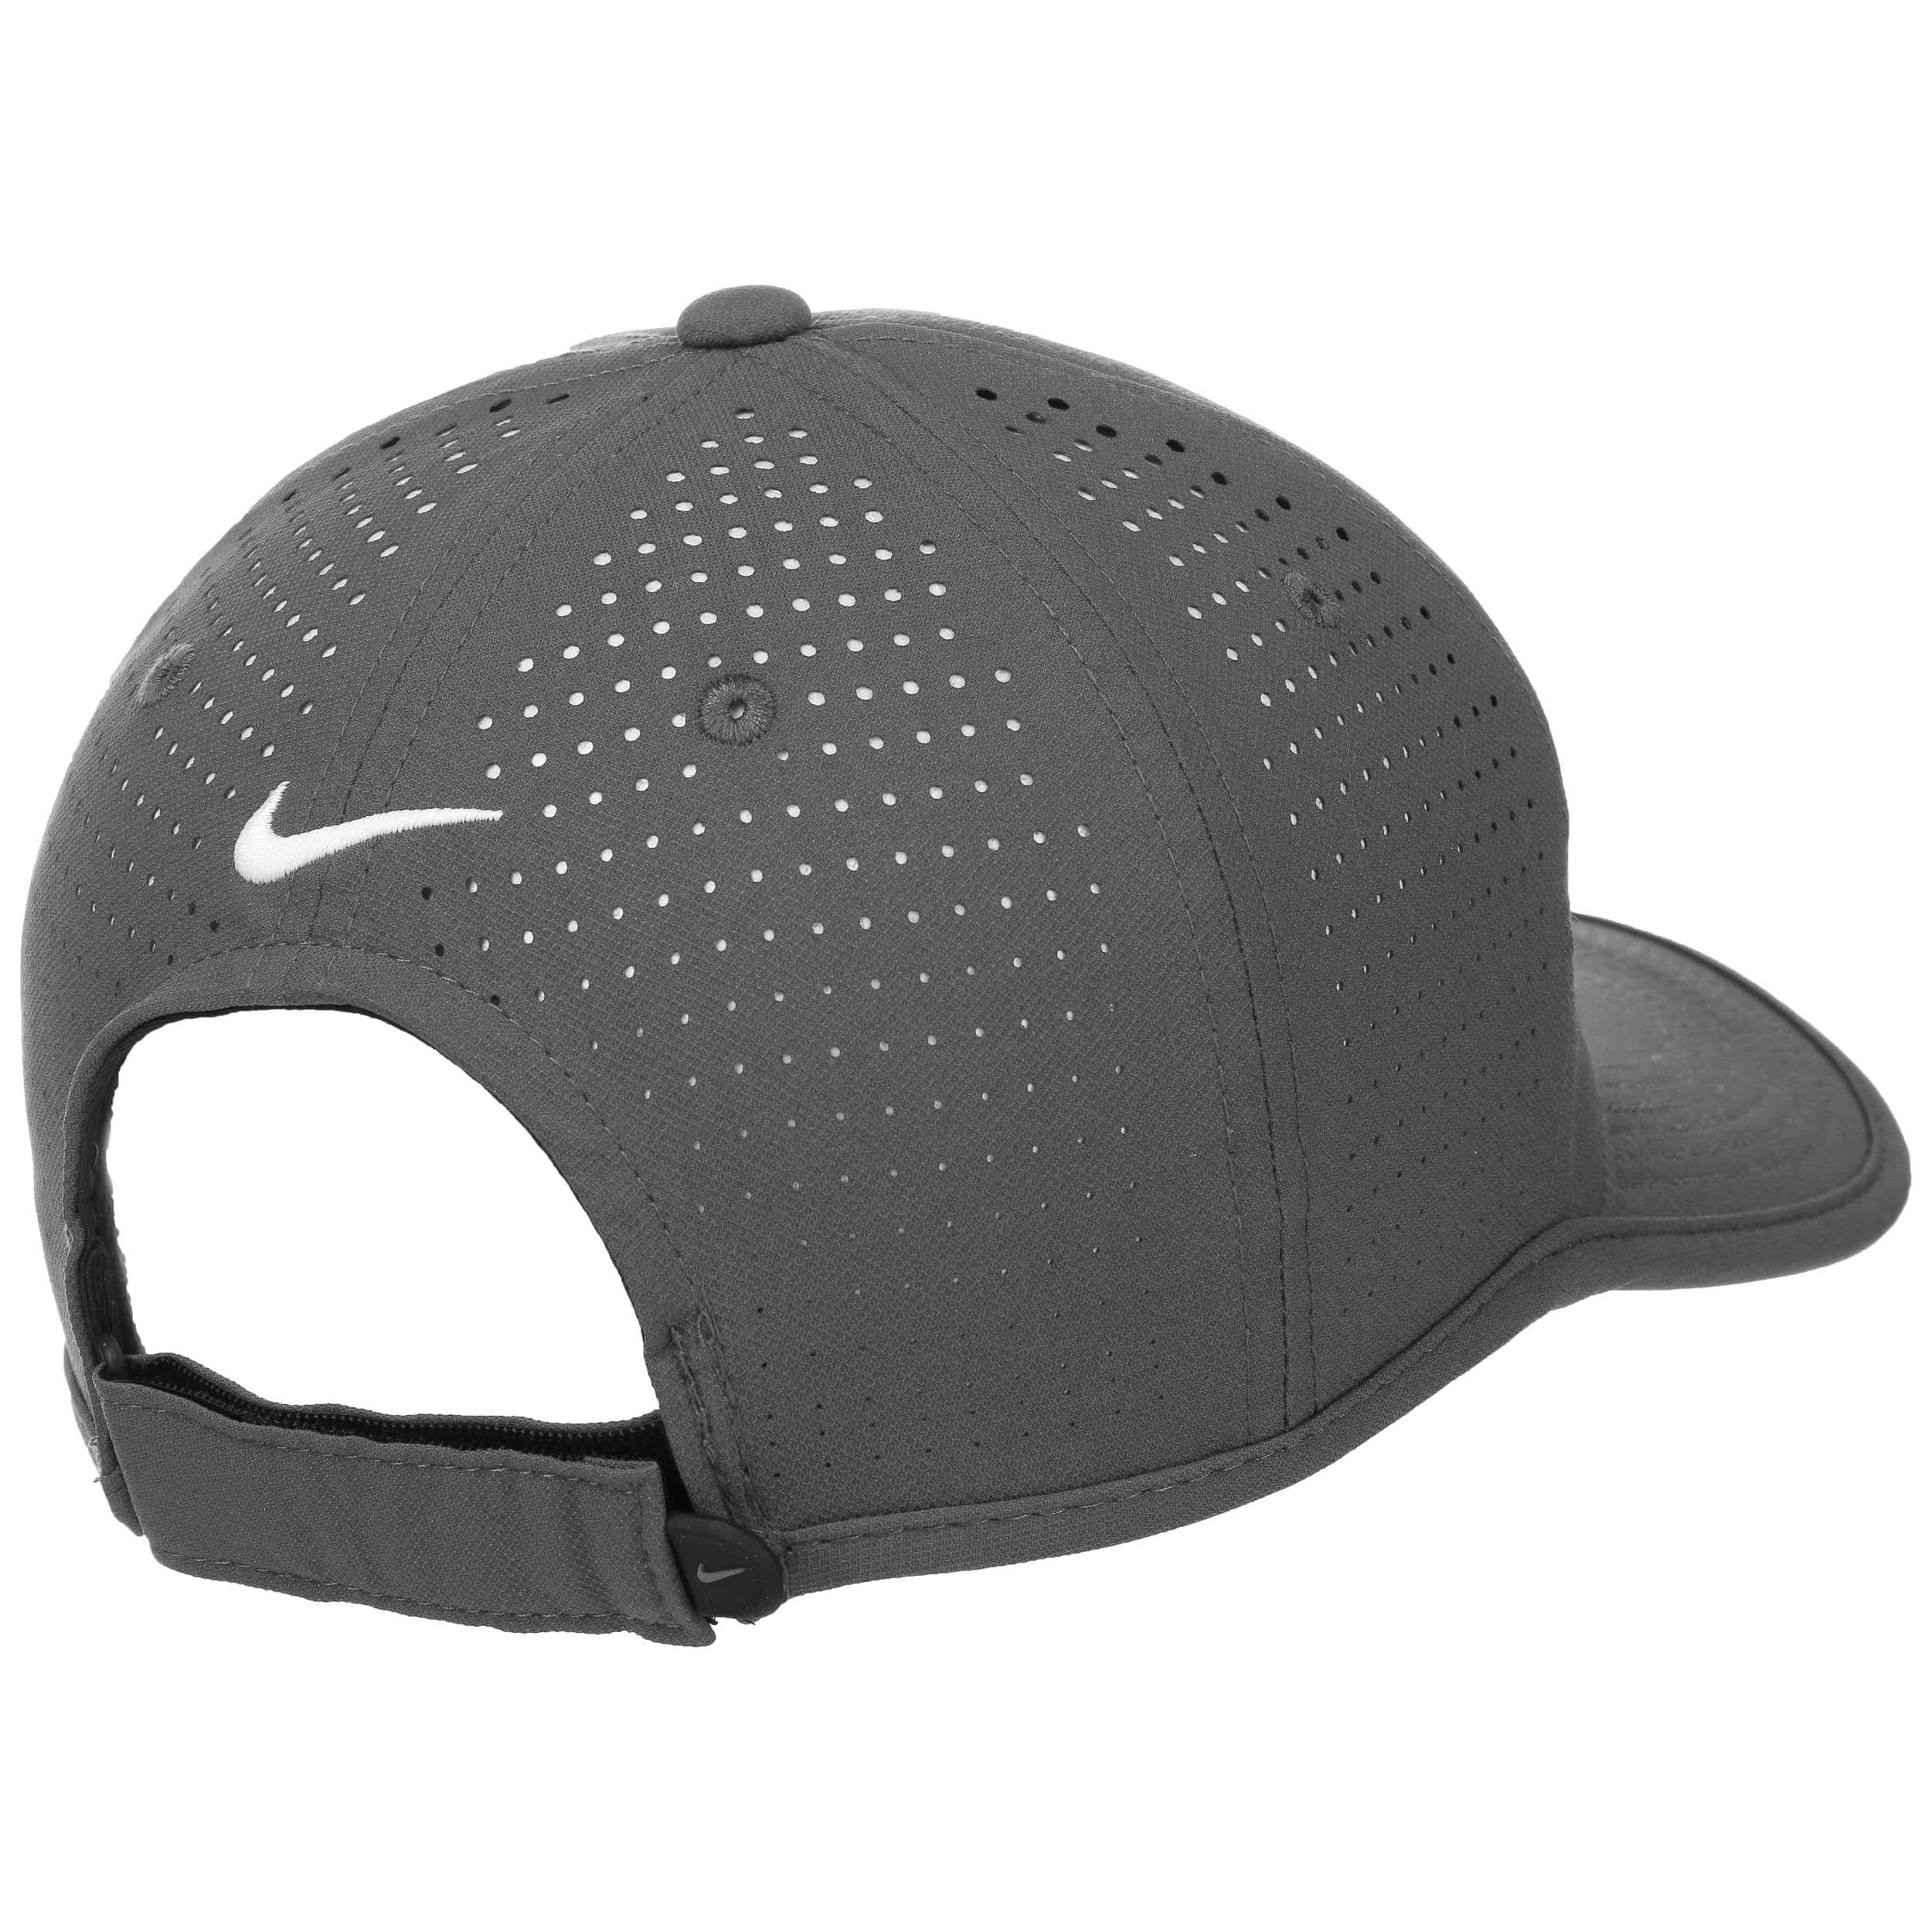 a3780bcc57c ... Ultralight Tour Perforation Cap by Nike - grey 3 ...